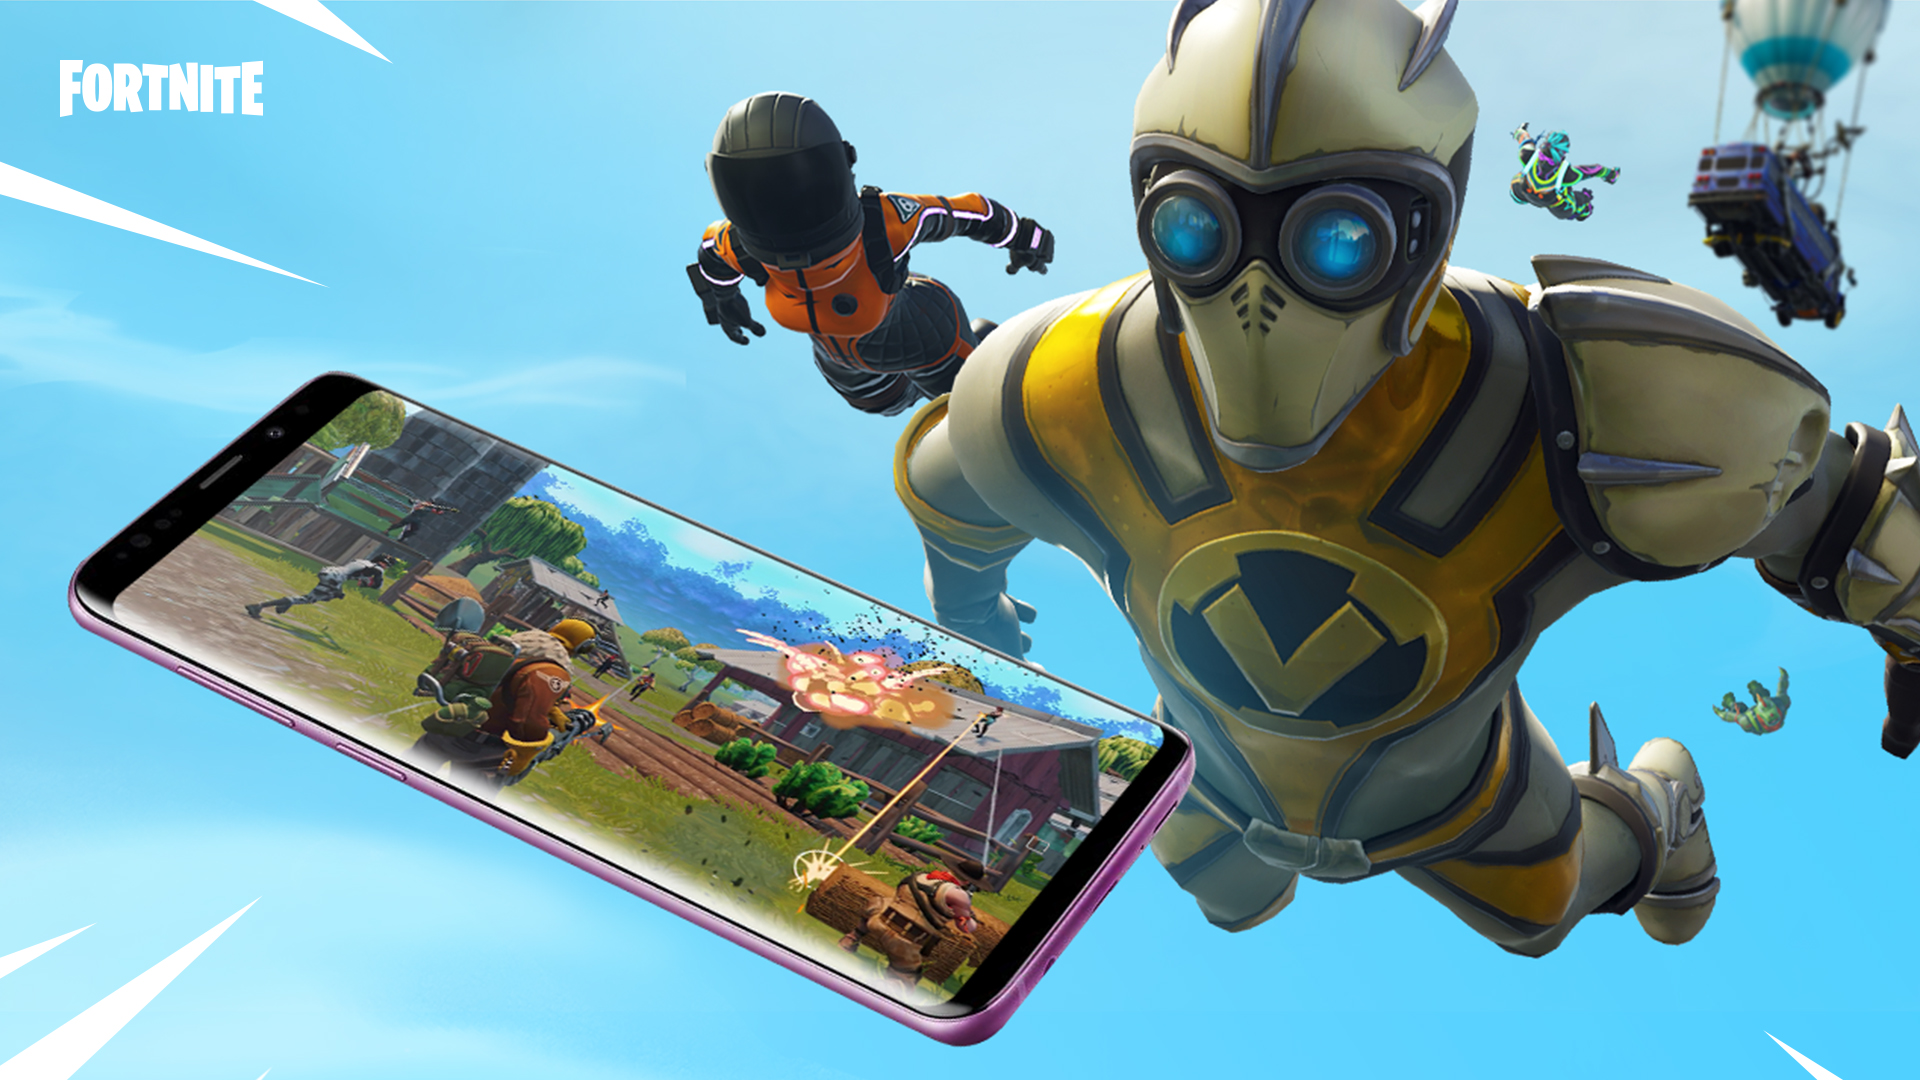 fortnite android epic announces more invites for android devices inverse - lg g6 fortnite lag